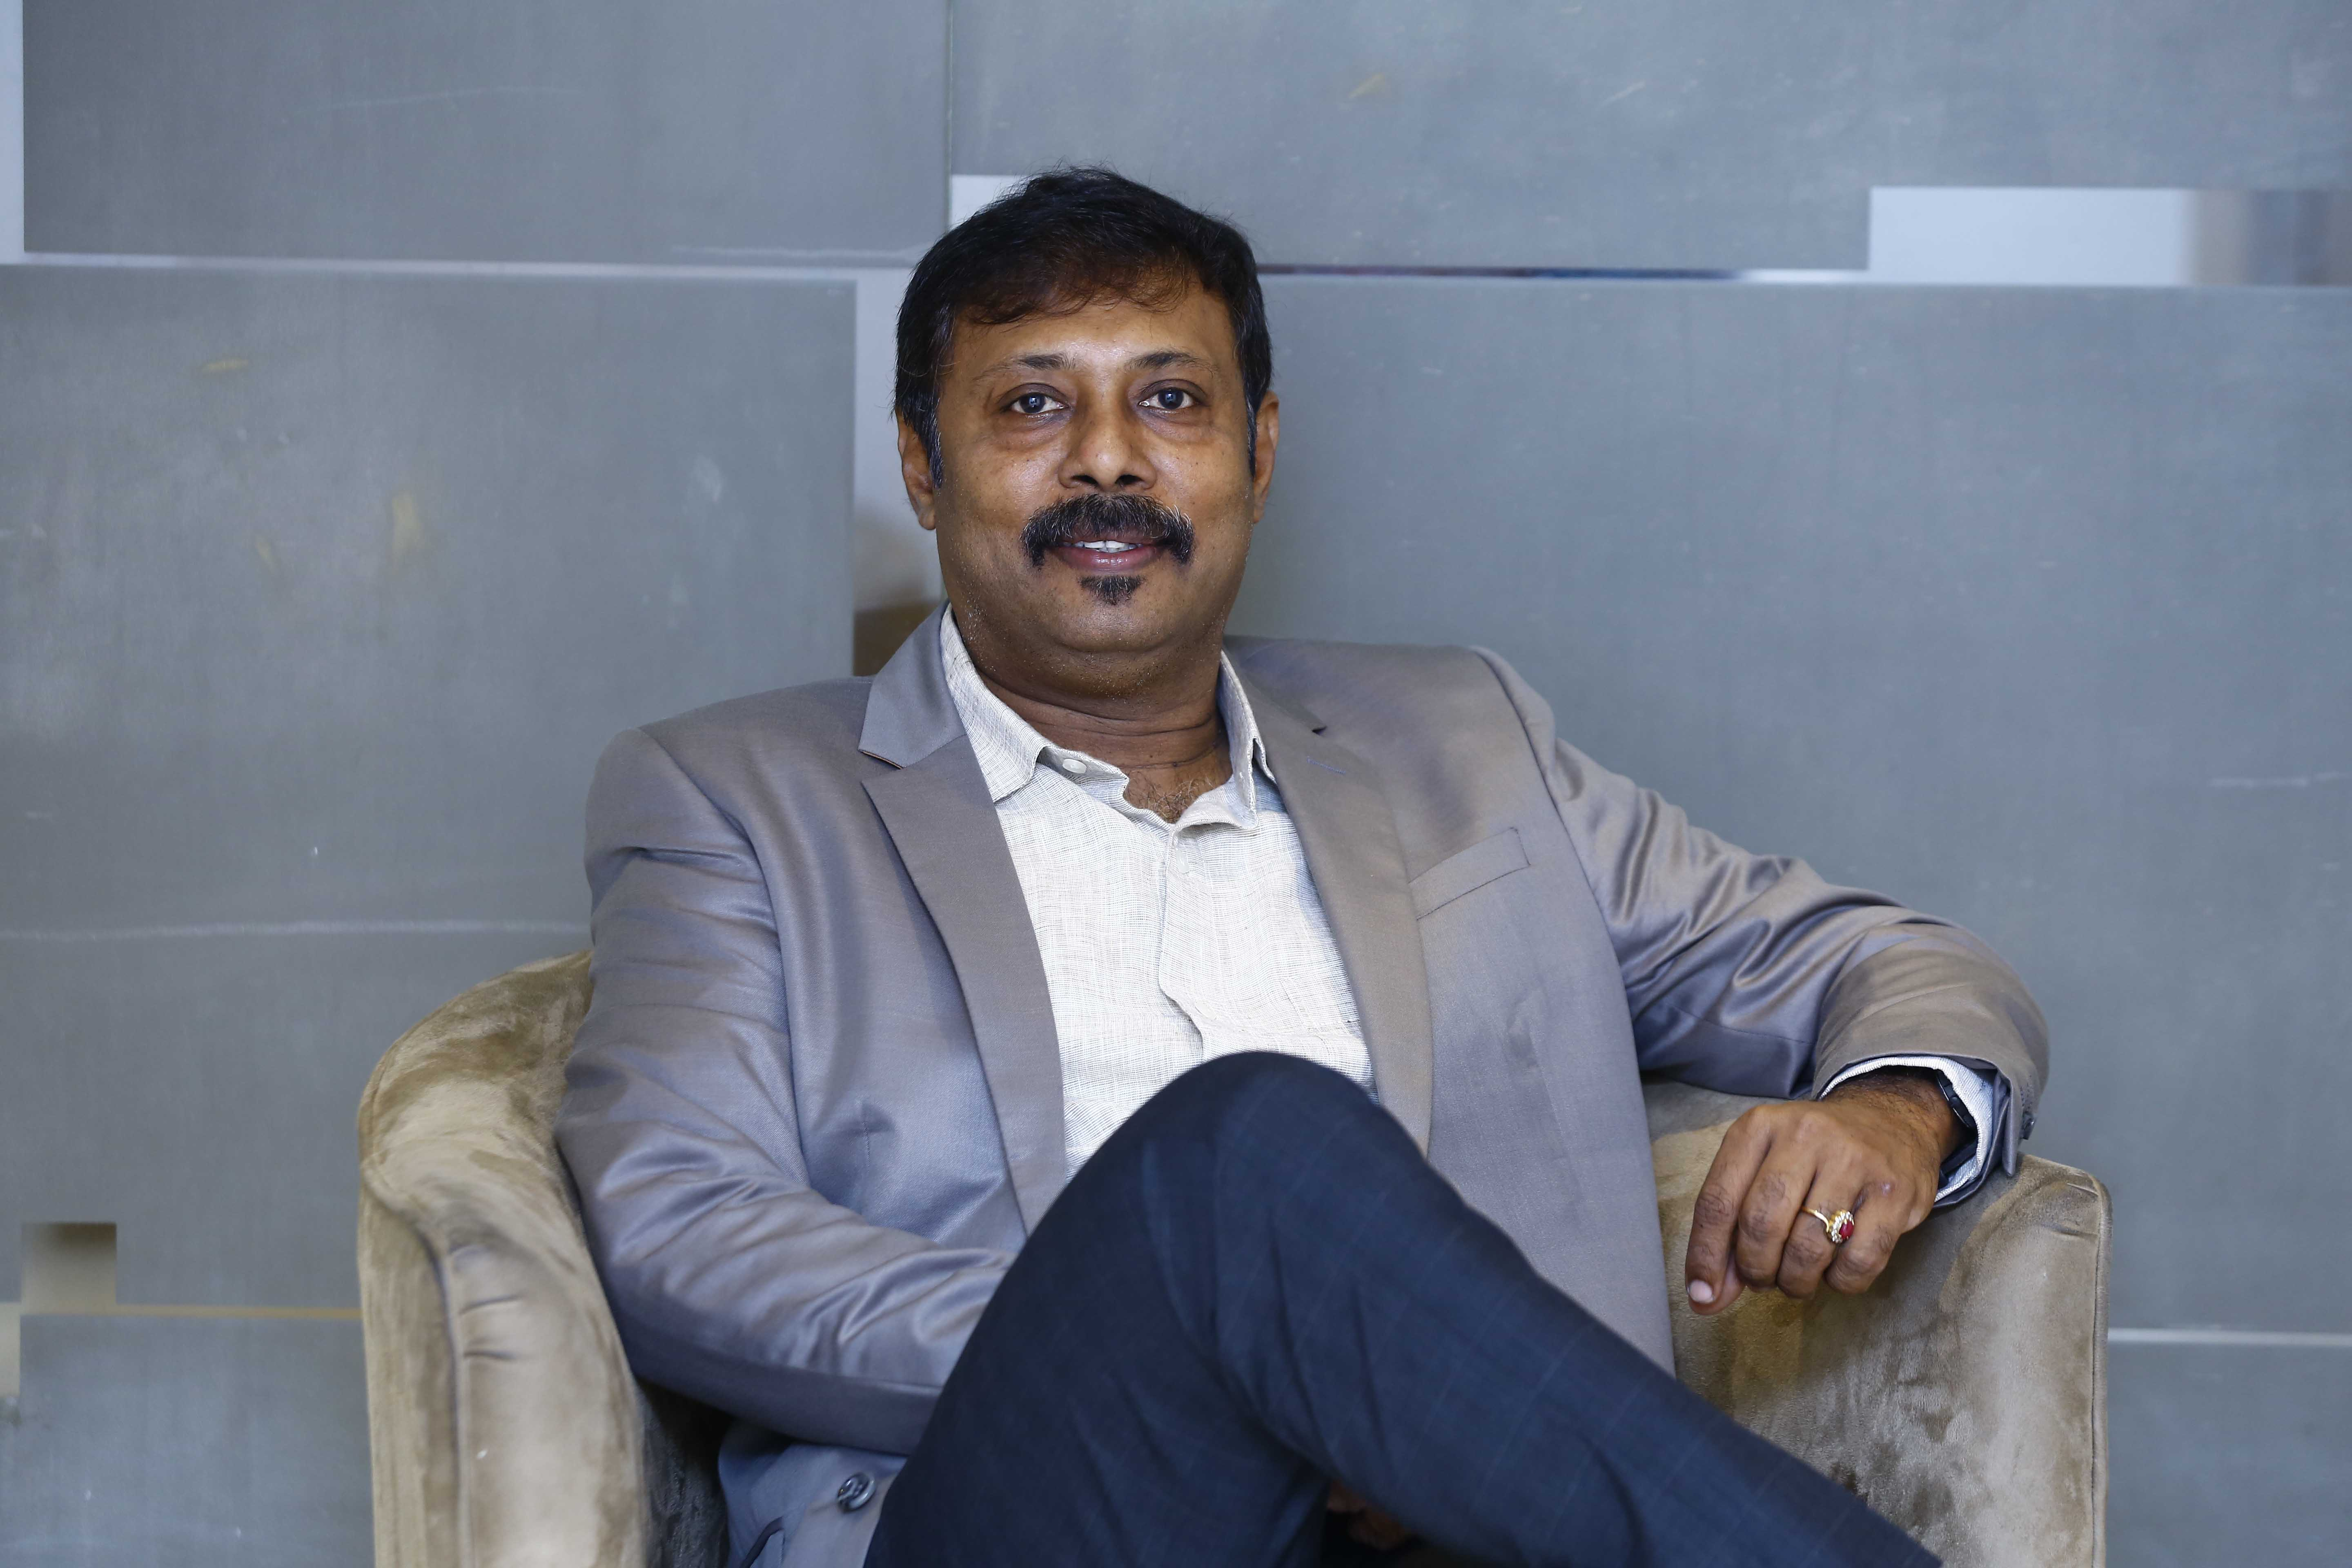 Mr. Sridharan Sivan_Founder and CEO S10 Health